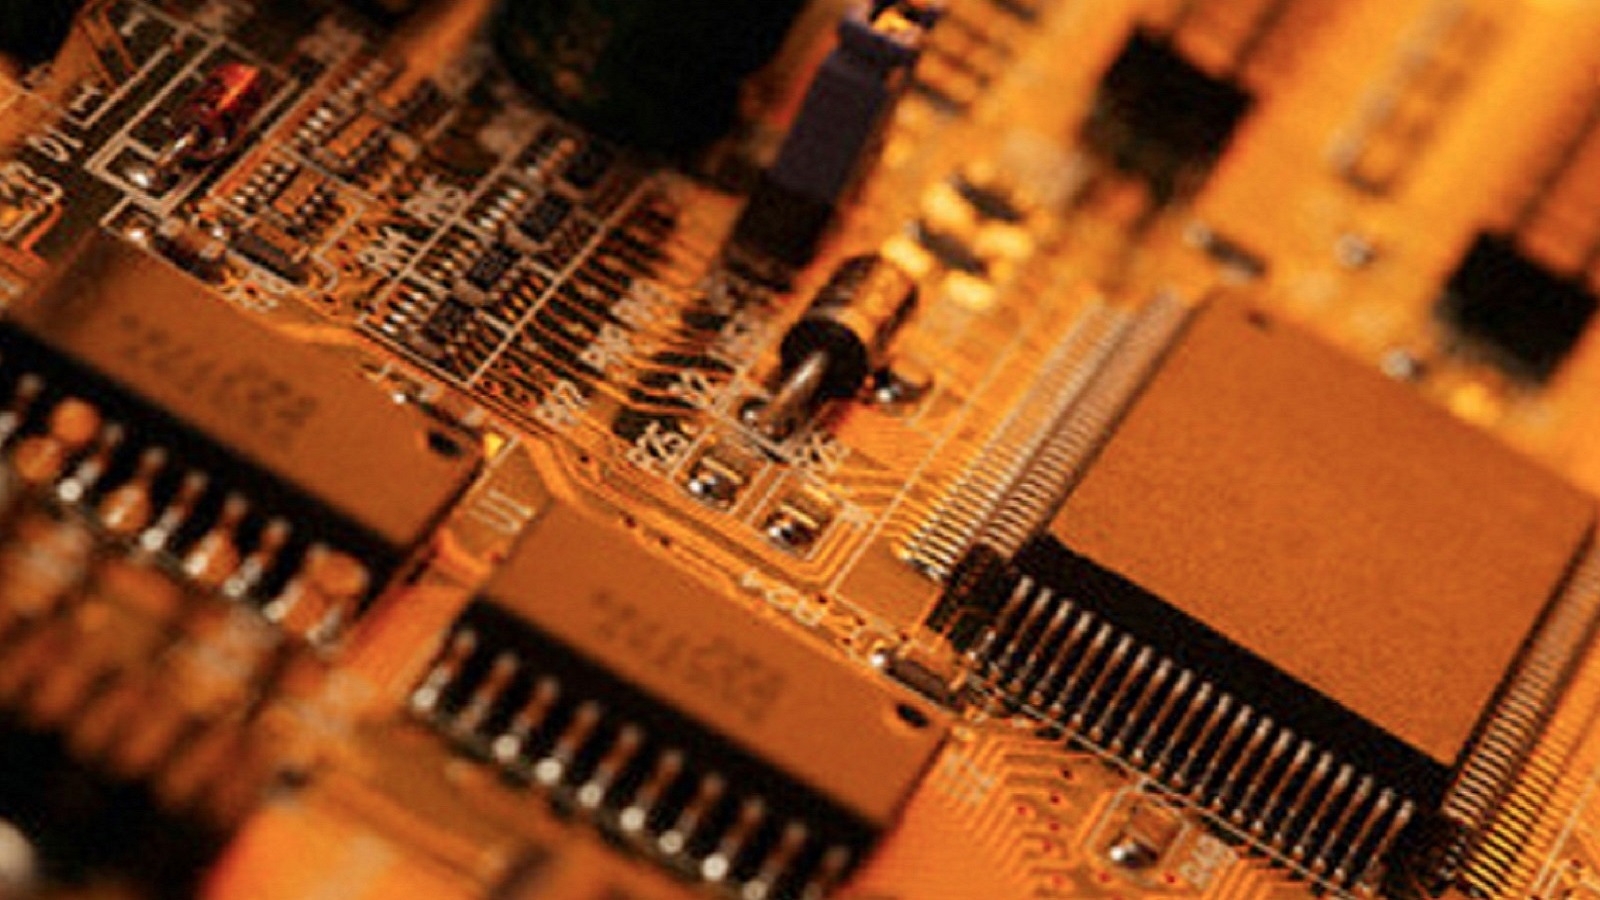 Semiconductor Industry For Electronics And High Tech